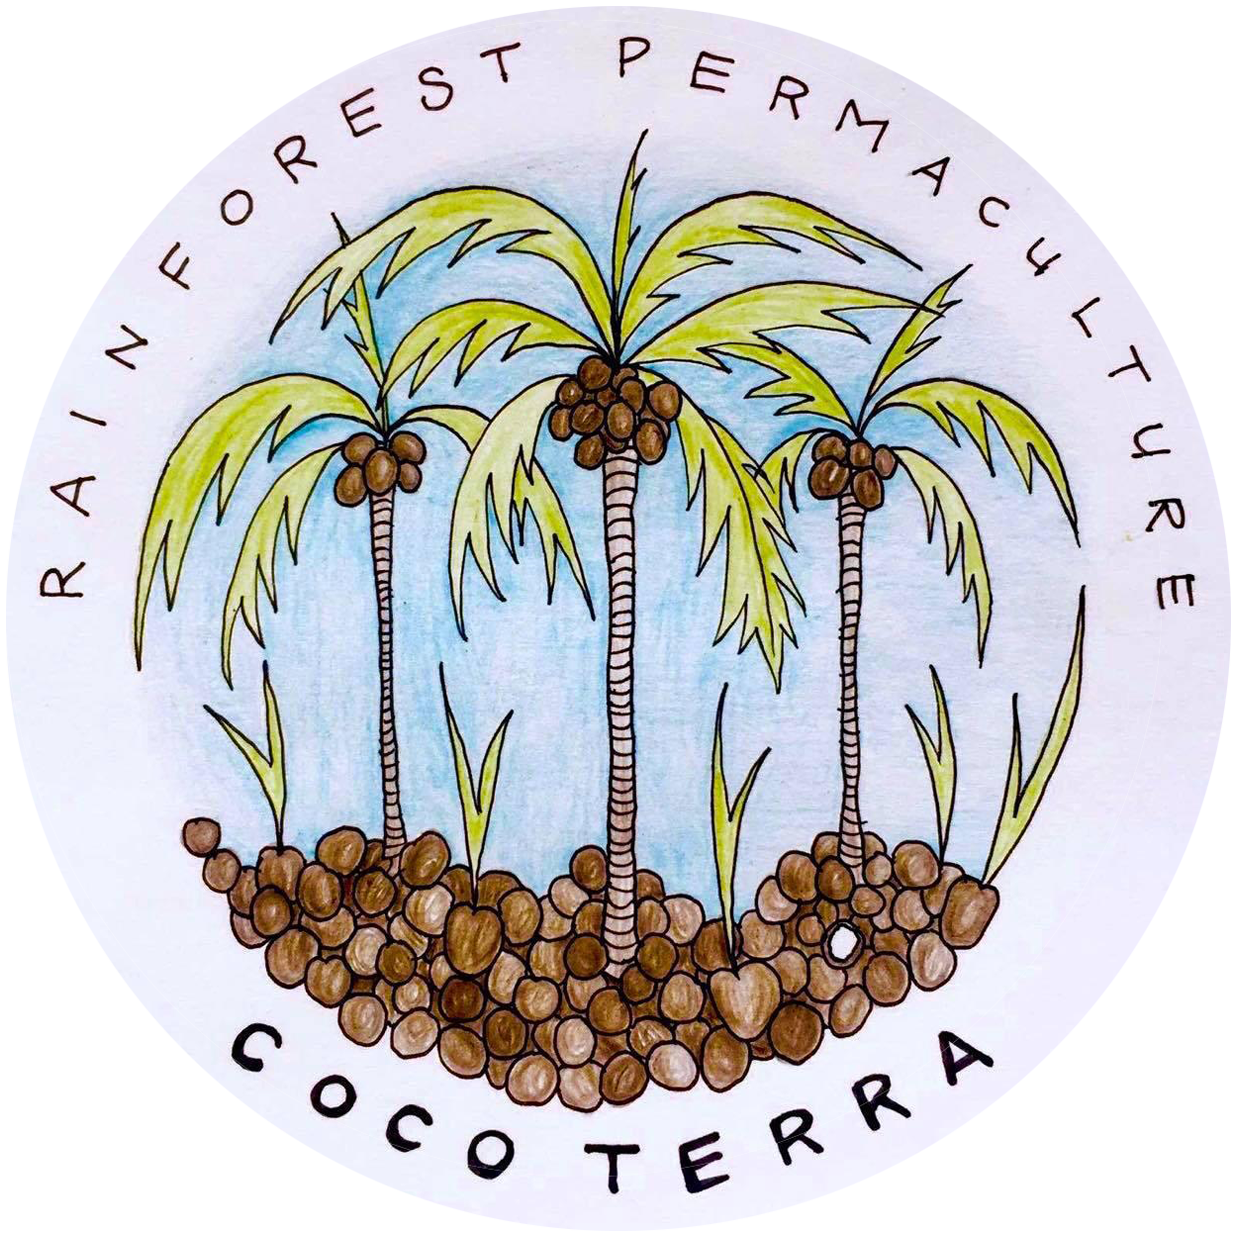 Rainforest Permaculture – Cocoterra